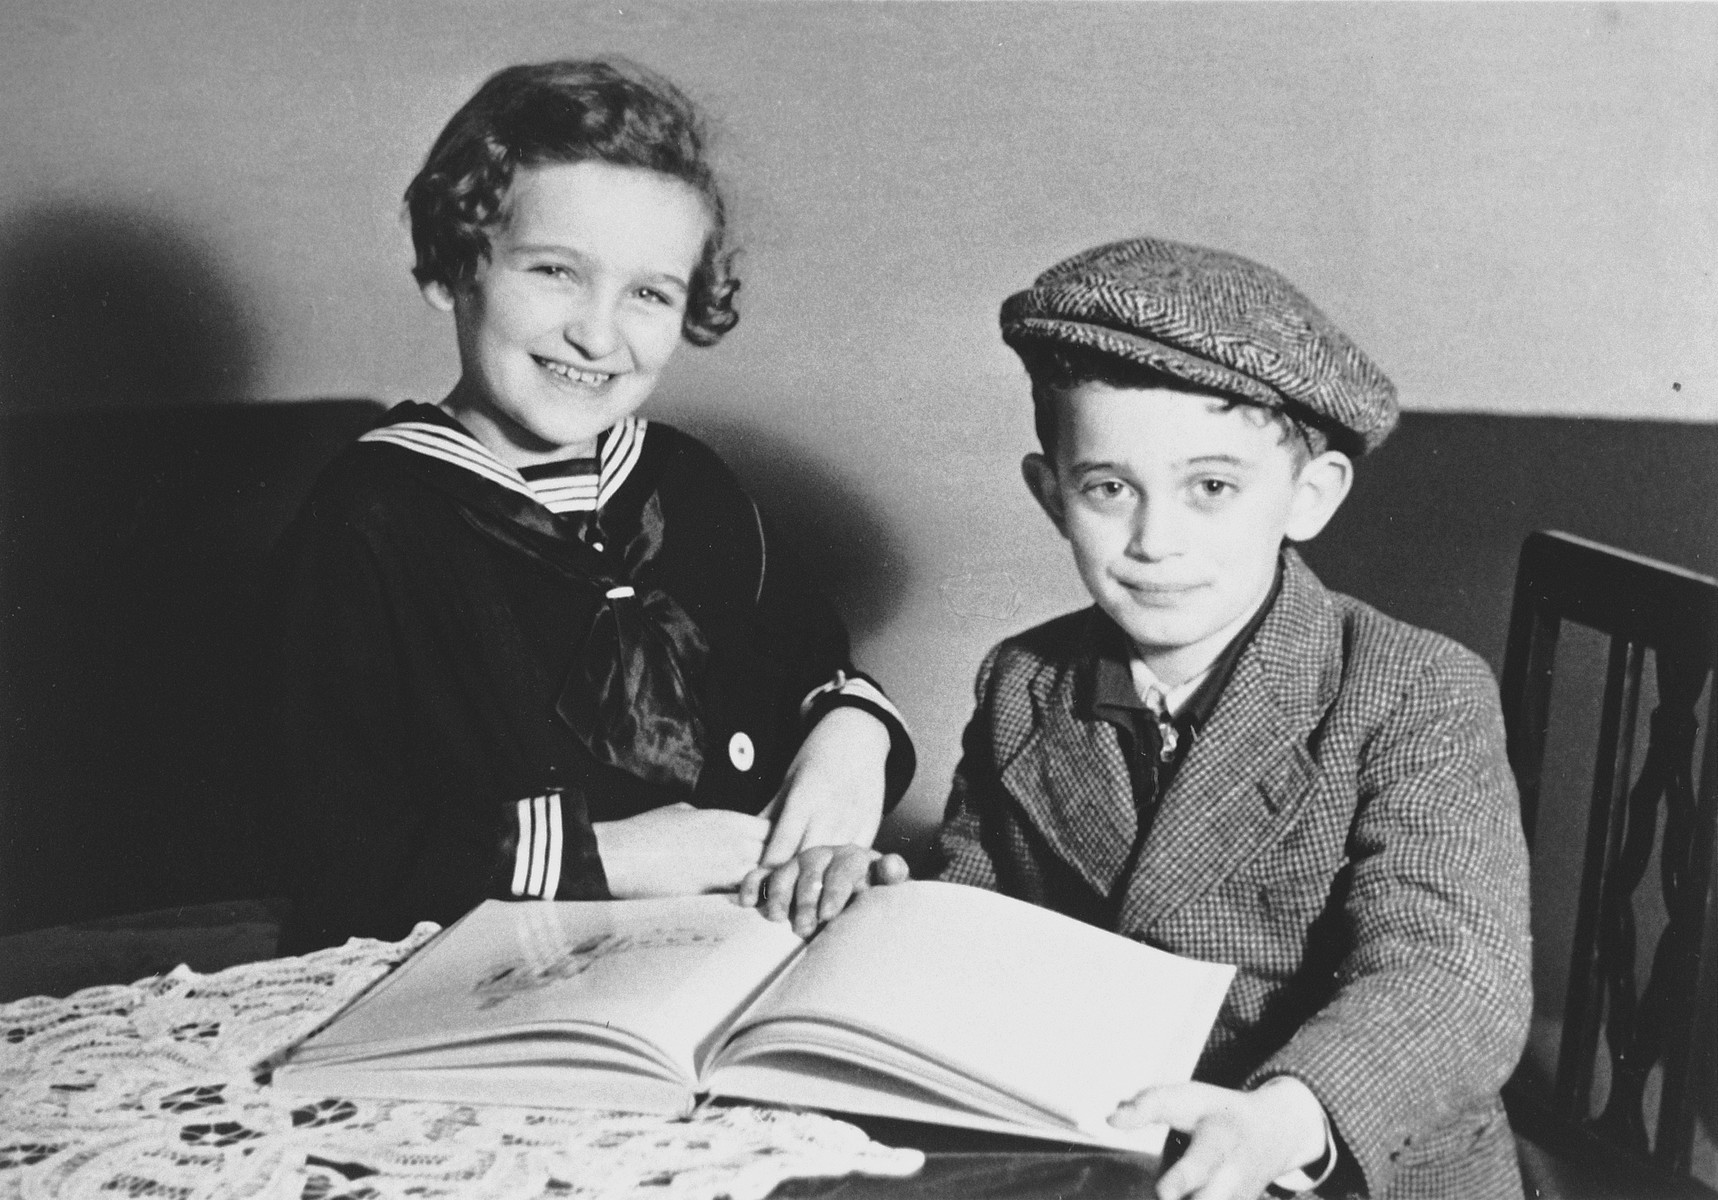 Two Jewish refugee children from the Third Reich who have resettled in Luxembourg and are being assisted by the ESRA Jewish social welfare organization, pose with an open book in their flat.